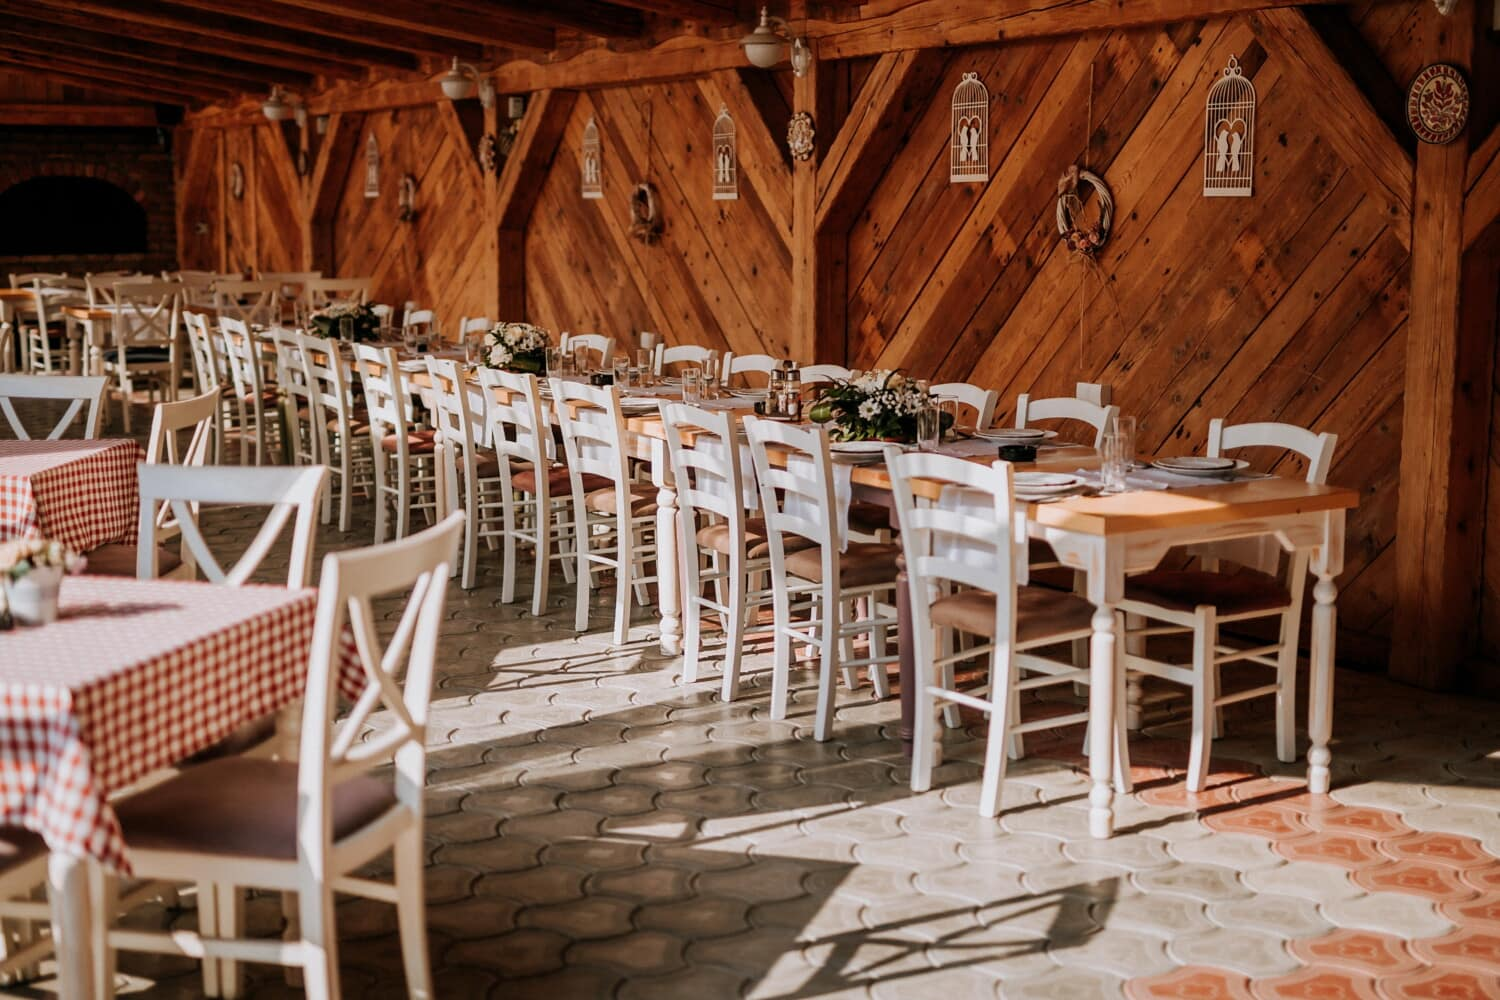 restaurant, interior, cafeteria, empty, seat, chair, wood, table, house, furniture